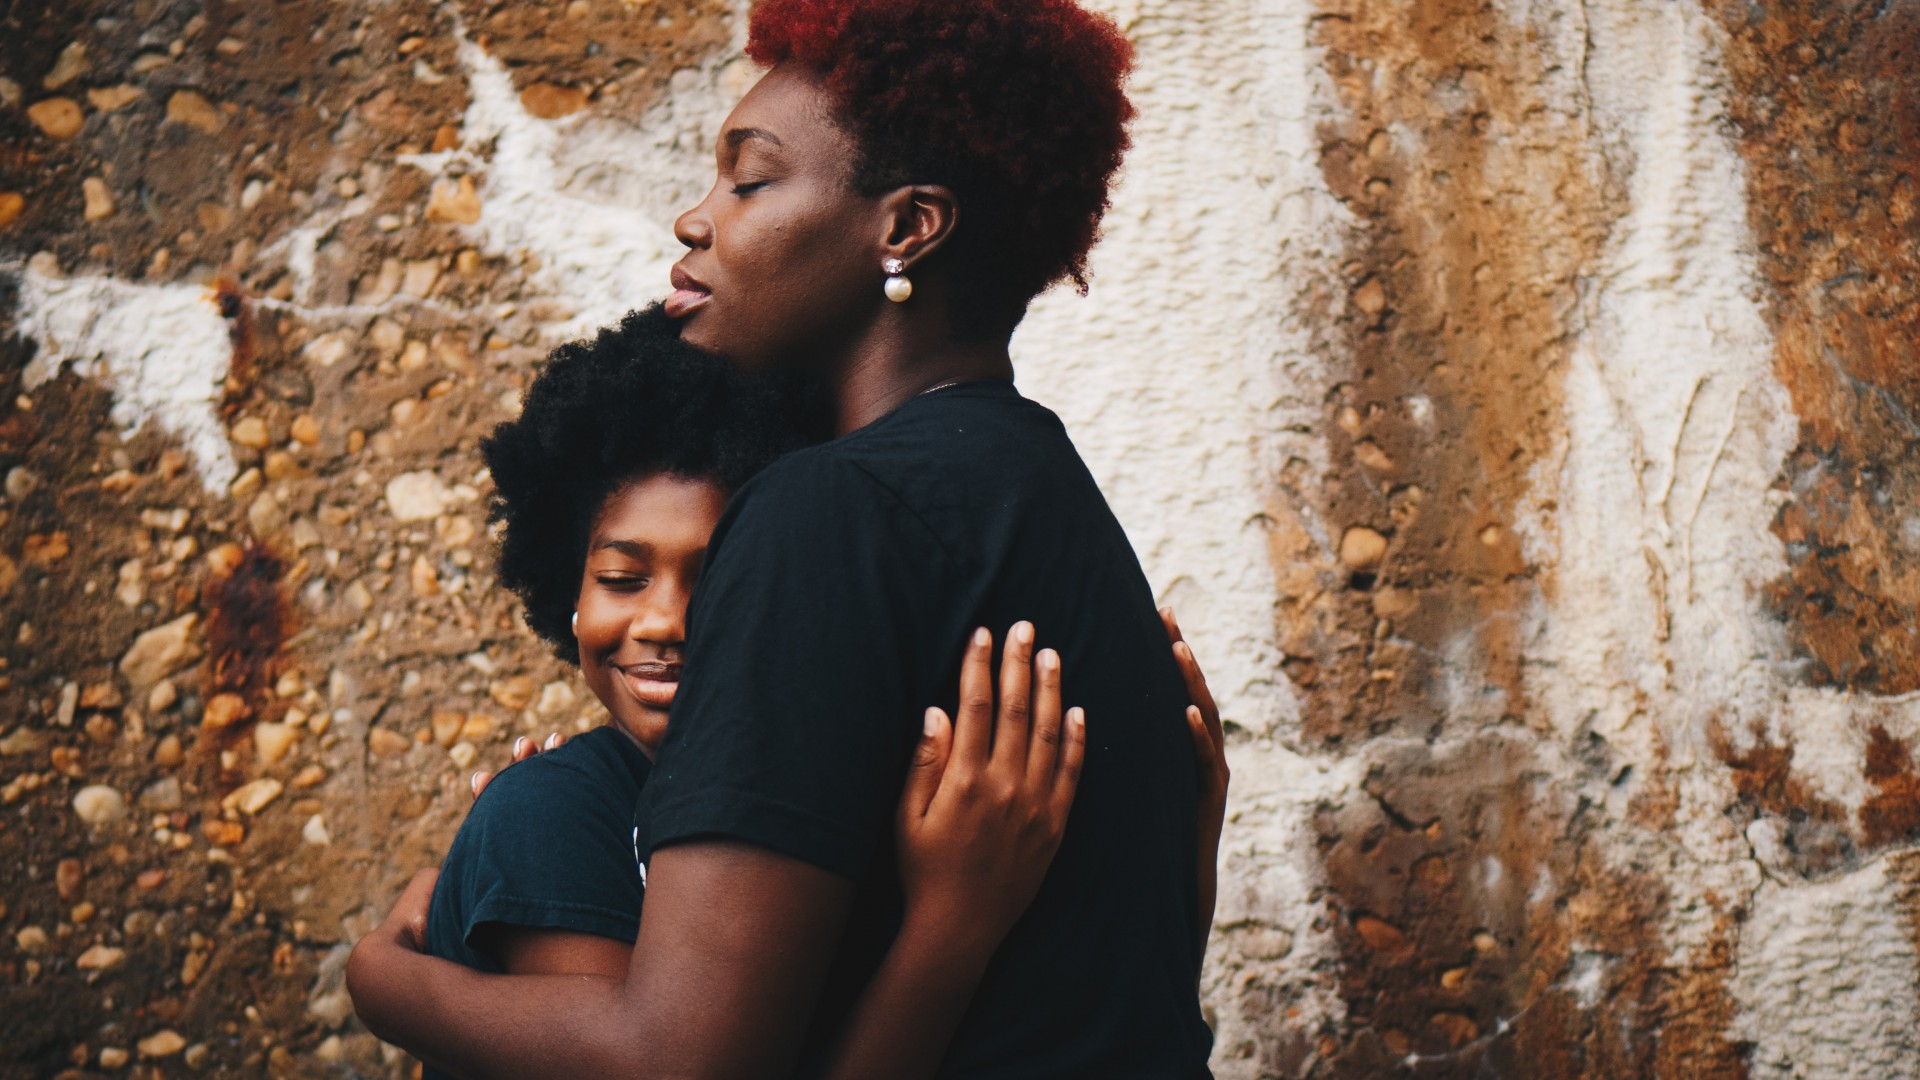 Parent and child hugging; Photo by Eye for Ebony on Unsplash